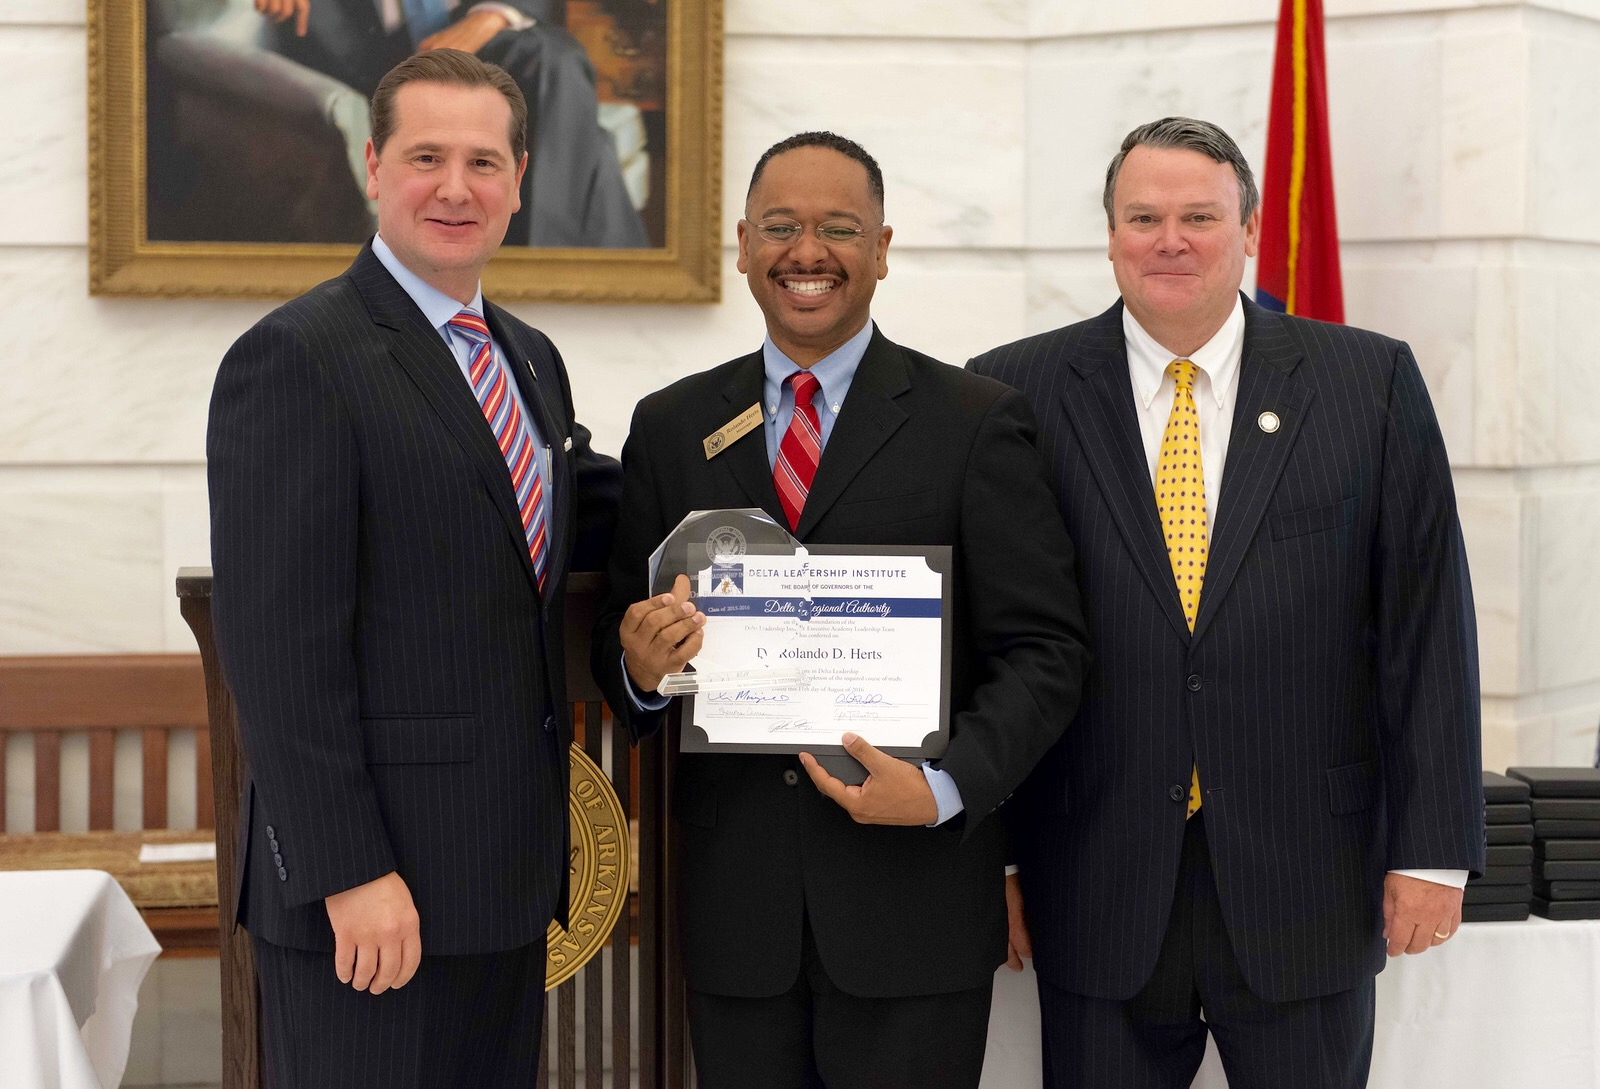 Dr. Rolando Herts, Director of The Delta Center at Delta State with DRA Federal Co-Chairman Chris Masingill (left) and Alternate Federal Co-Chairman Mike Marshall (right)